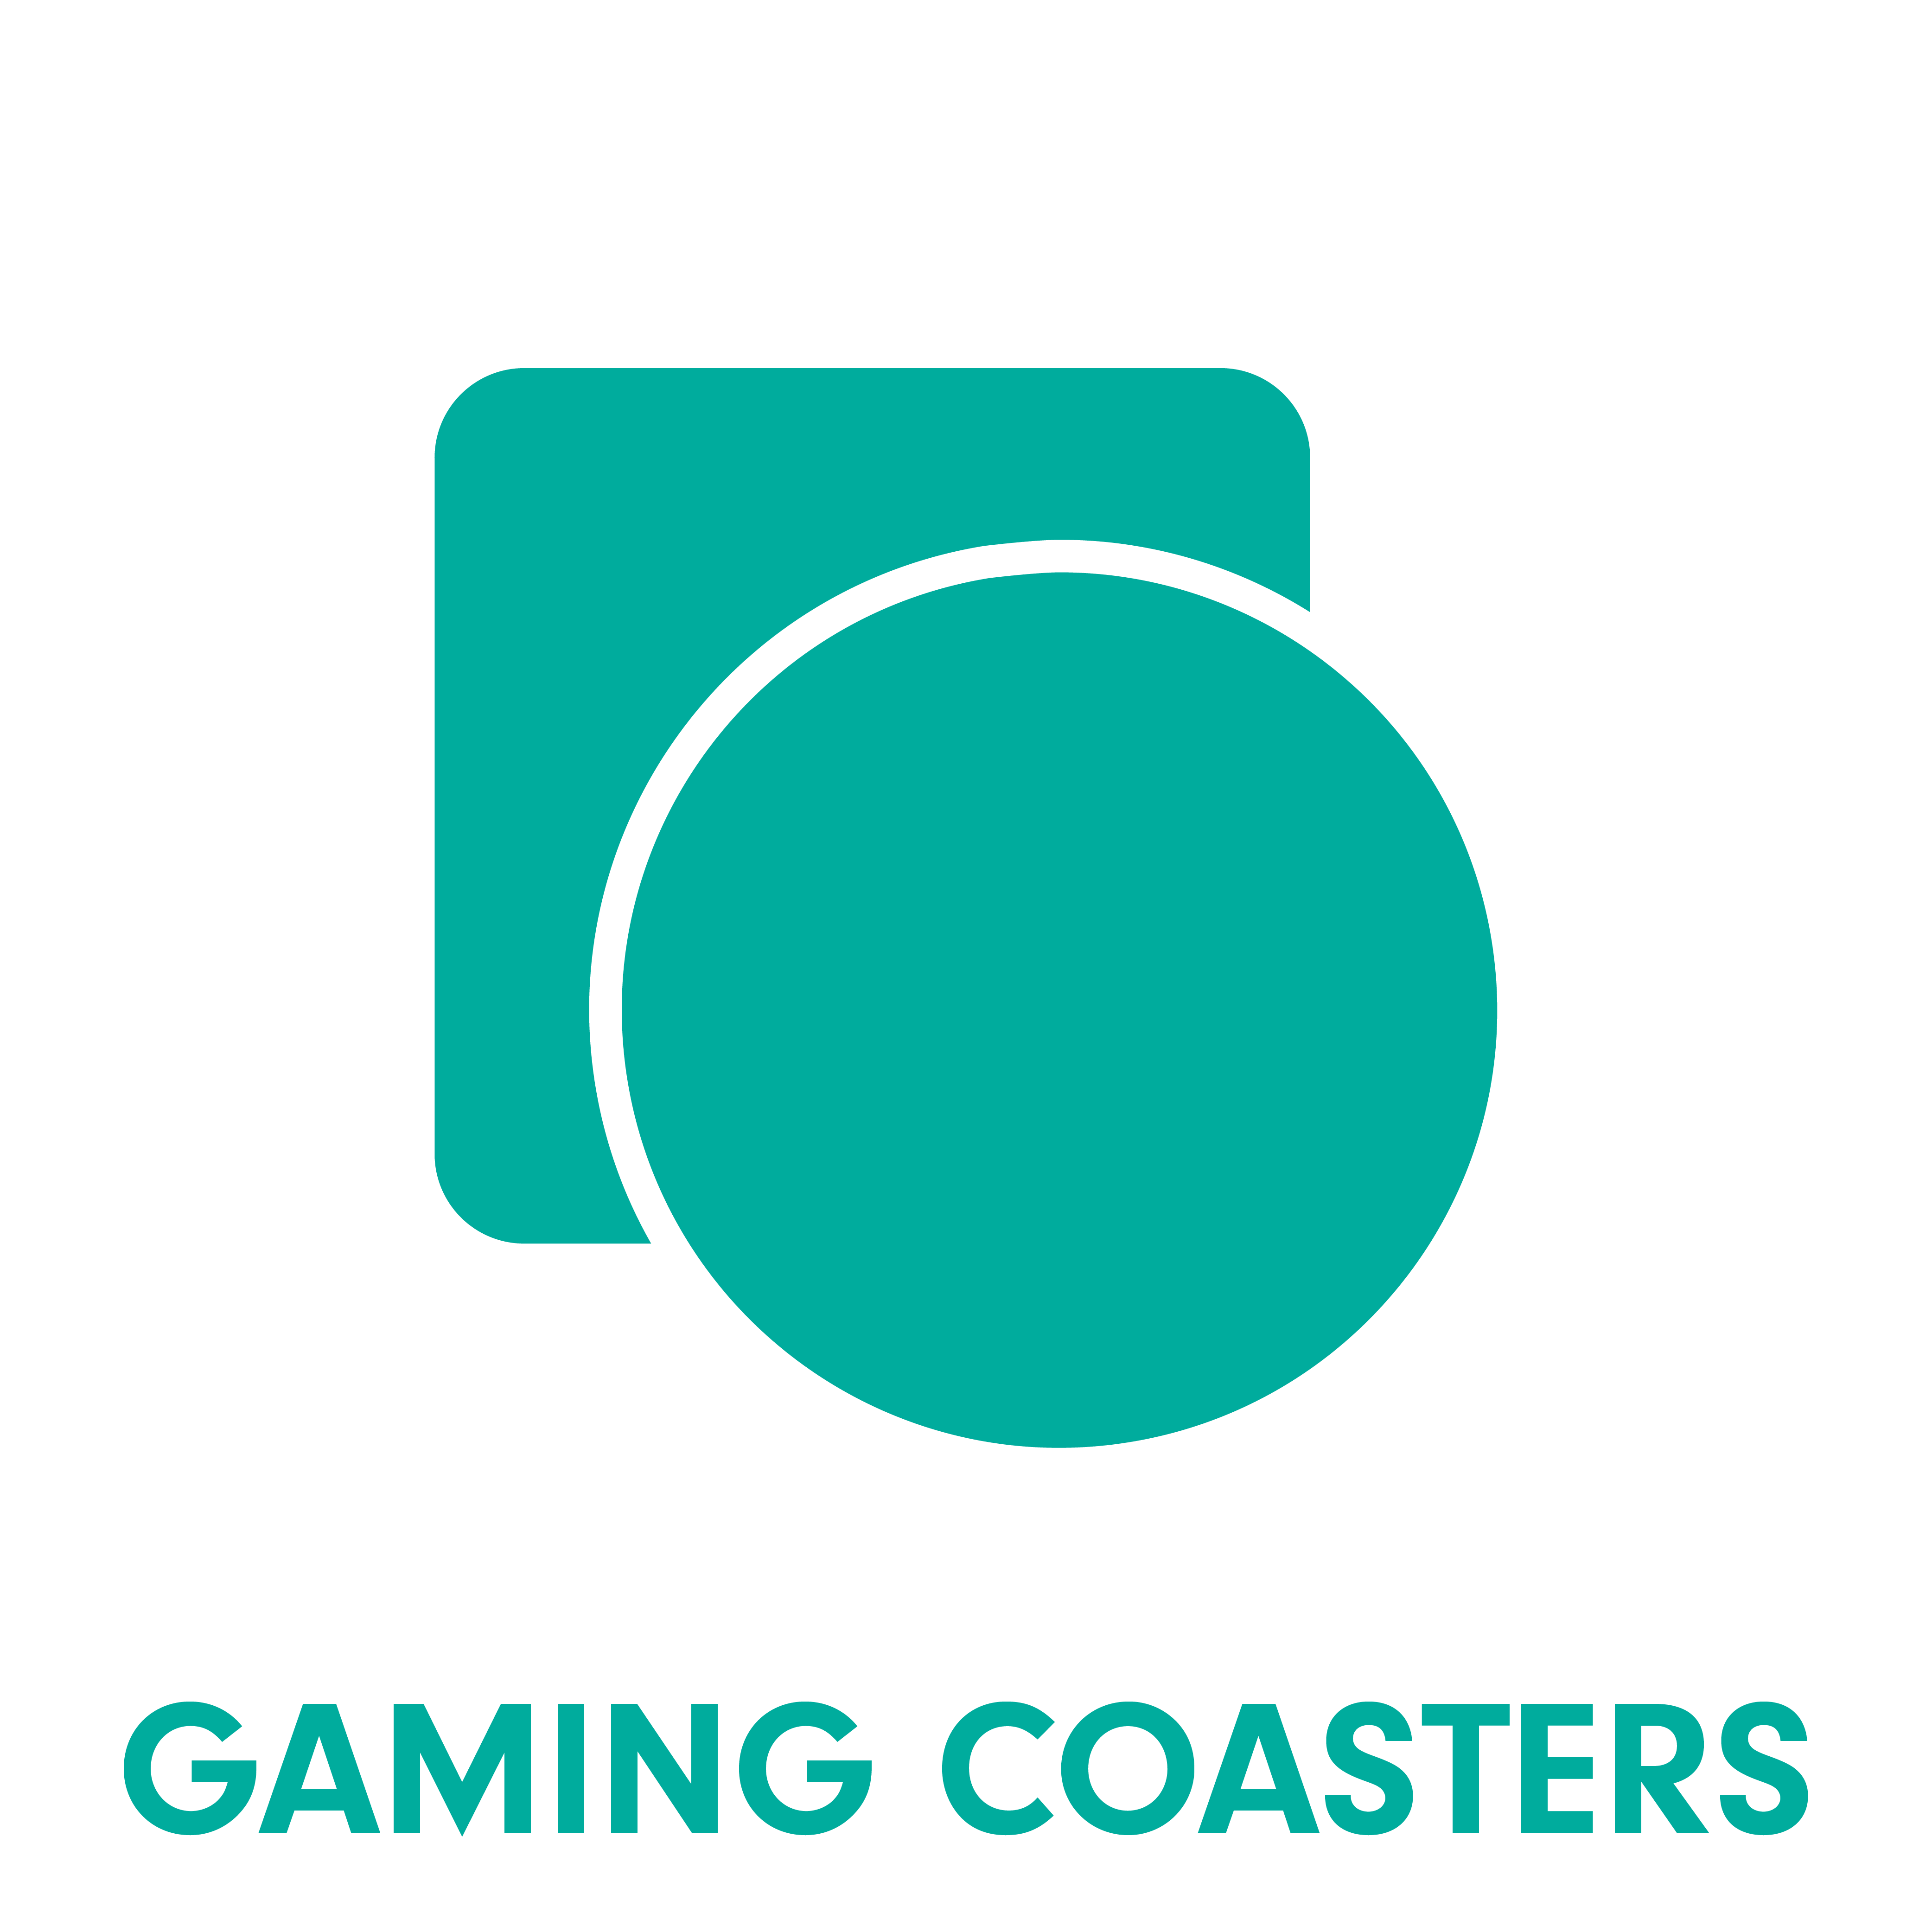 Gaming Coasters category icon